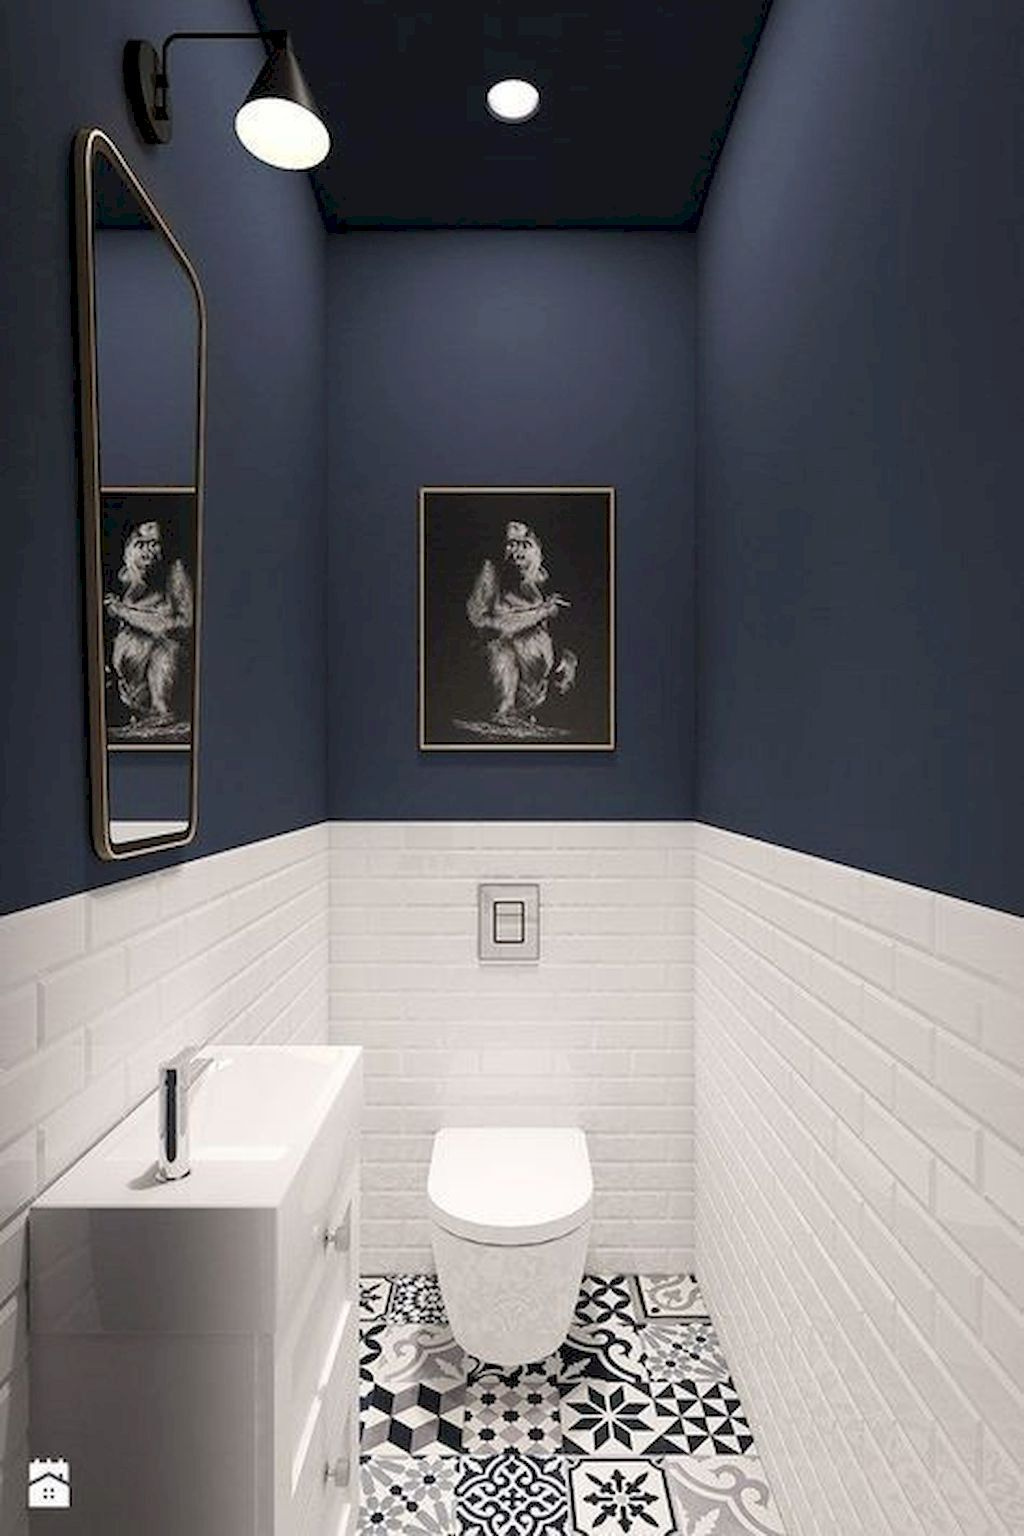 Pin By Heather Dietel On Home Project Wish List White Bathroom Designs Small Bathroom Small Bathroom Remodel